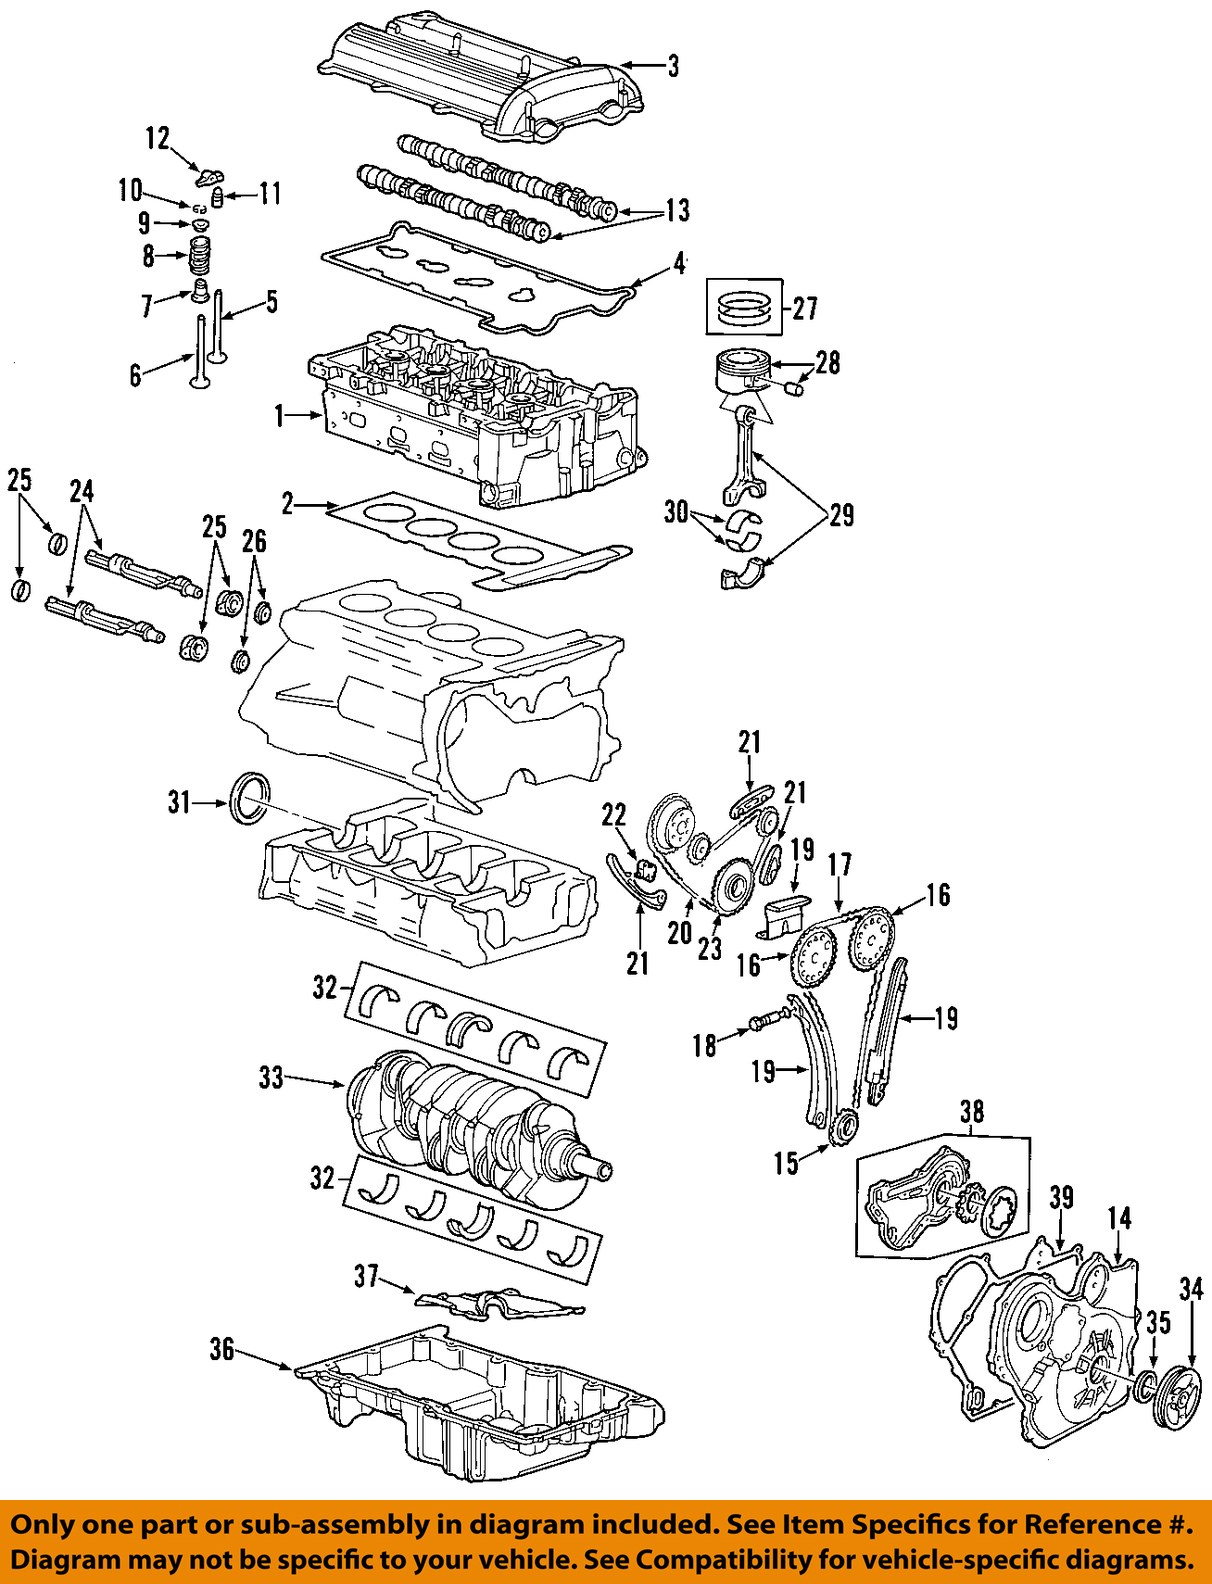 2006 Saturn Vue 2 Engine Diagram Great Installation Of Wiring Kia Optima Electrical Diagrams Scematic Rh 66 Jessicadonath De 22